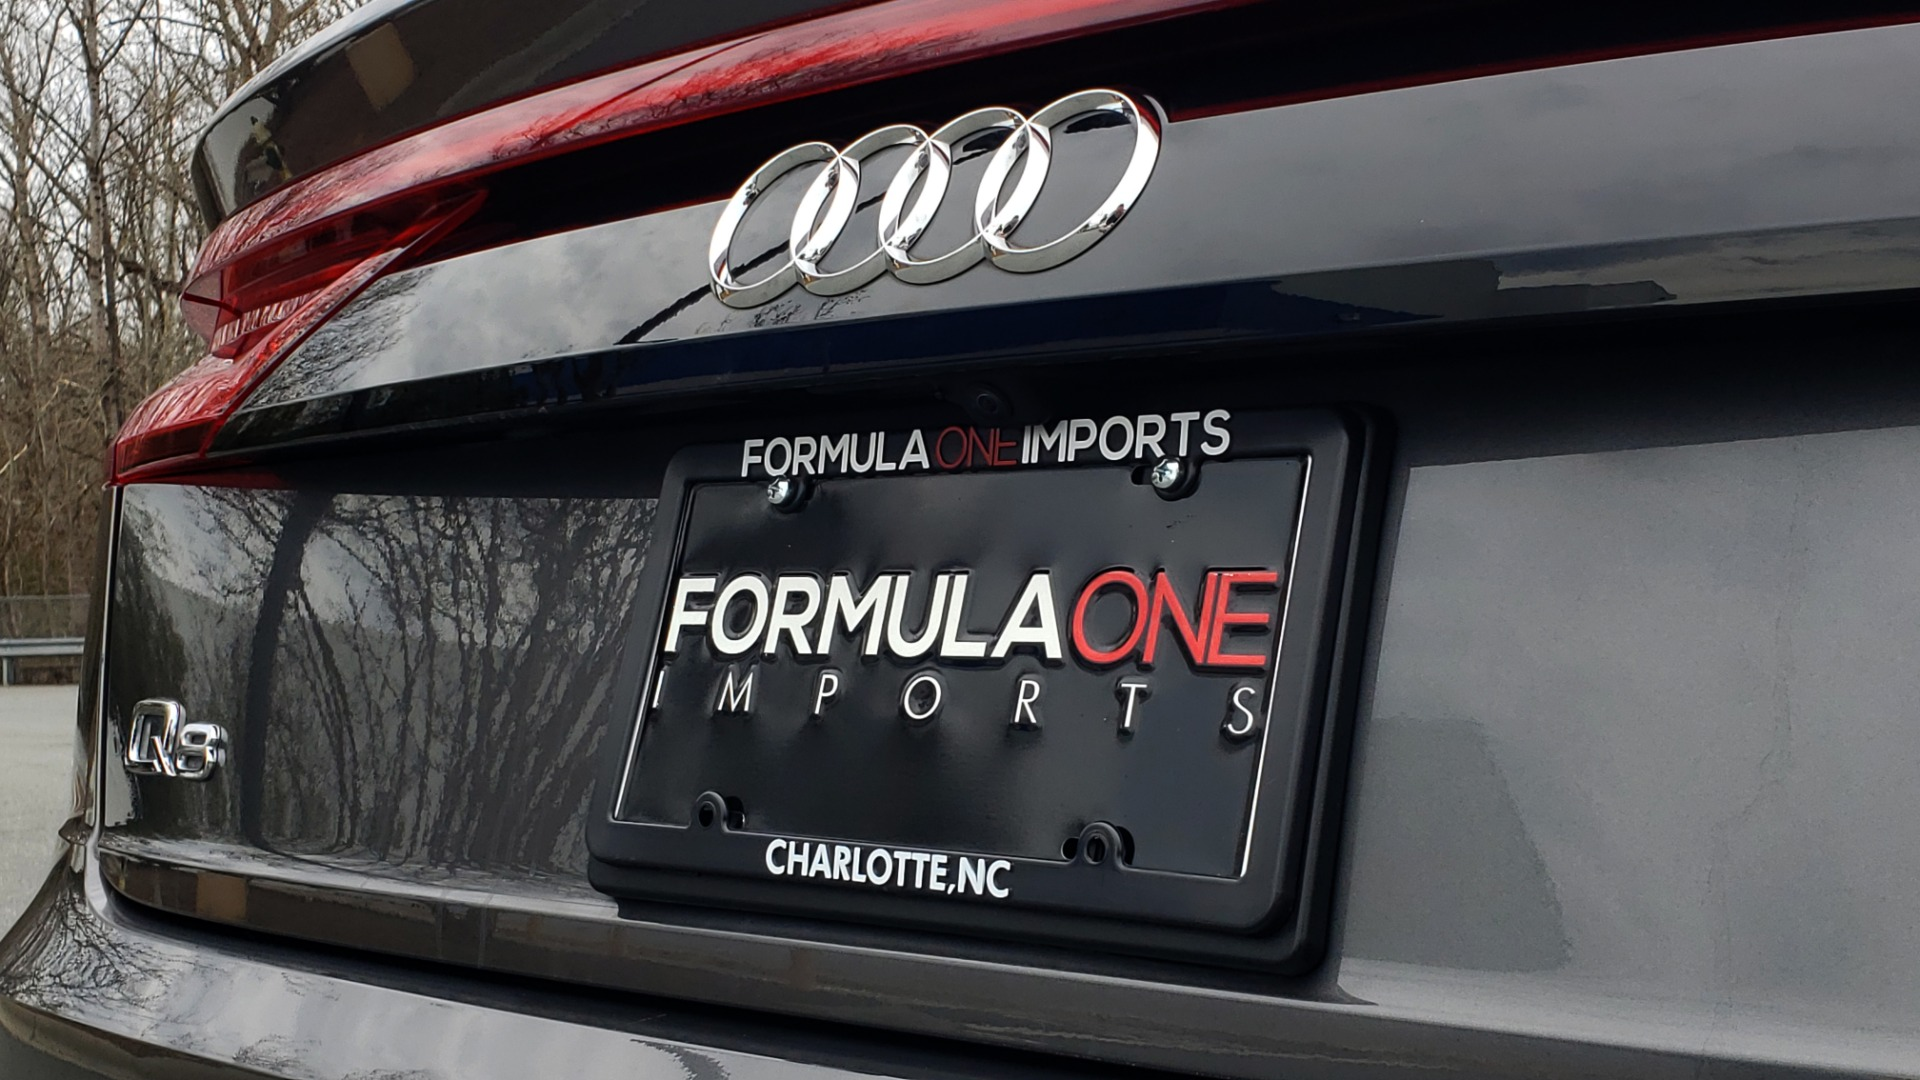 Used 2019 Audi Q8 PRESTIGE 3.0 / NAV / SUNROOF / BO SND / COLD WTHR / REARVIEW for sale Sold at Formula Imports in Charlotte NC 28227 29